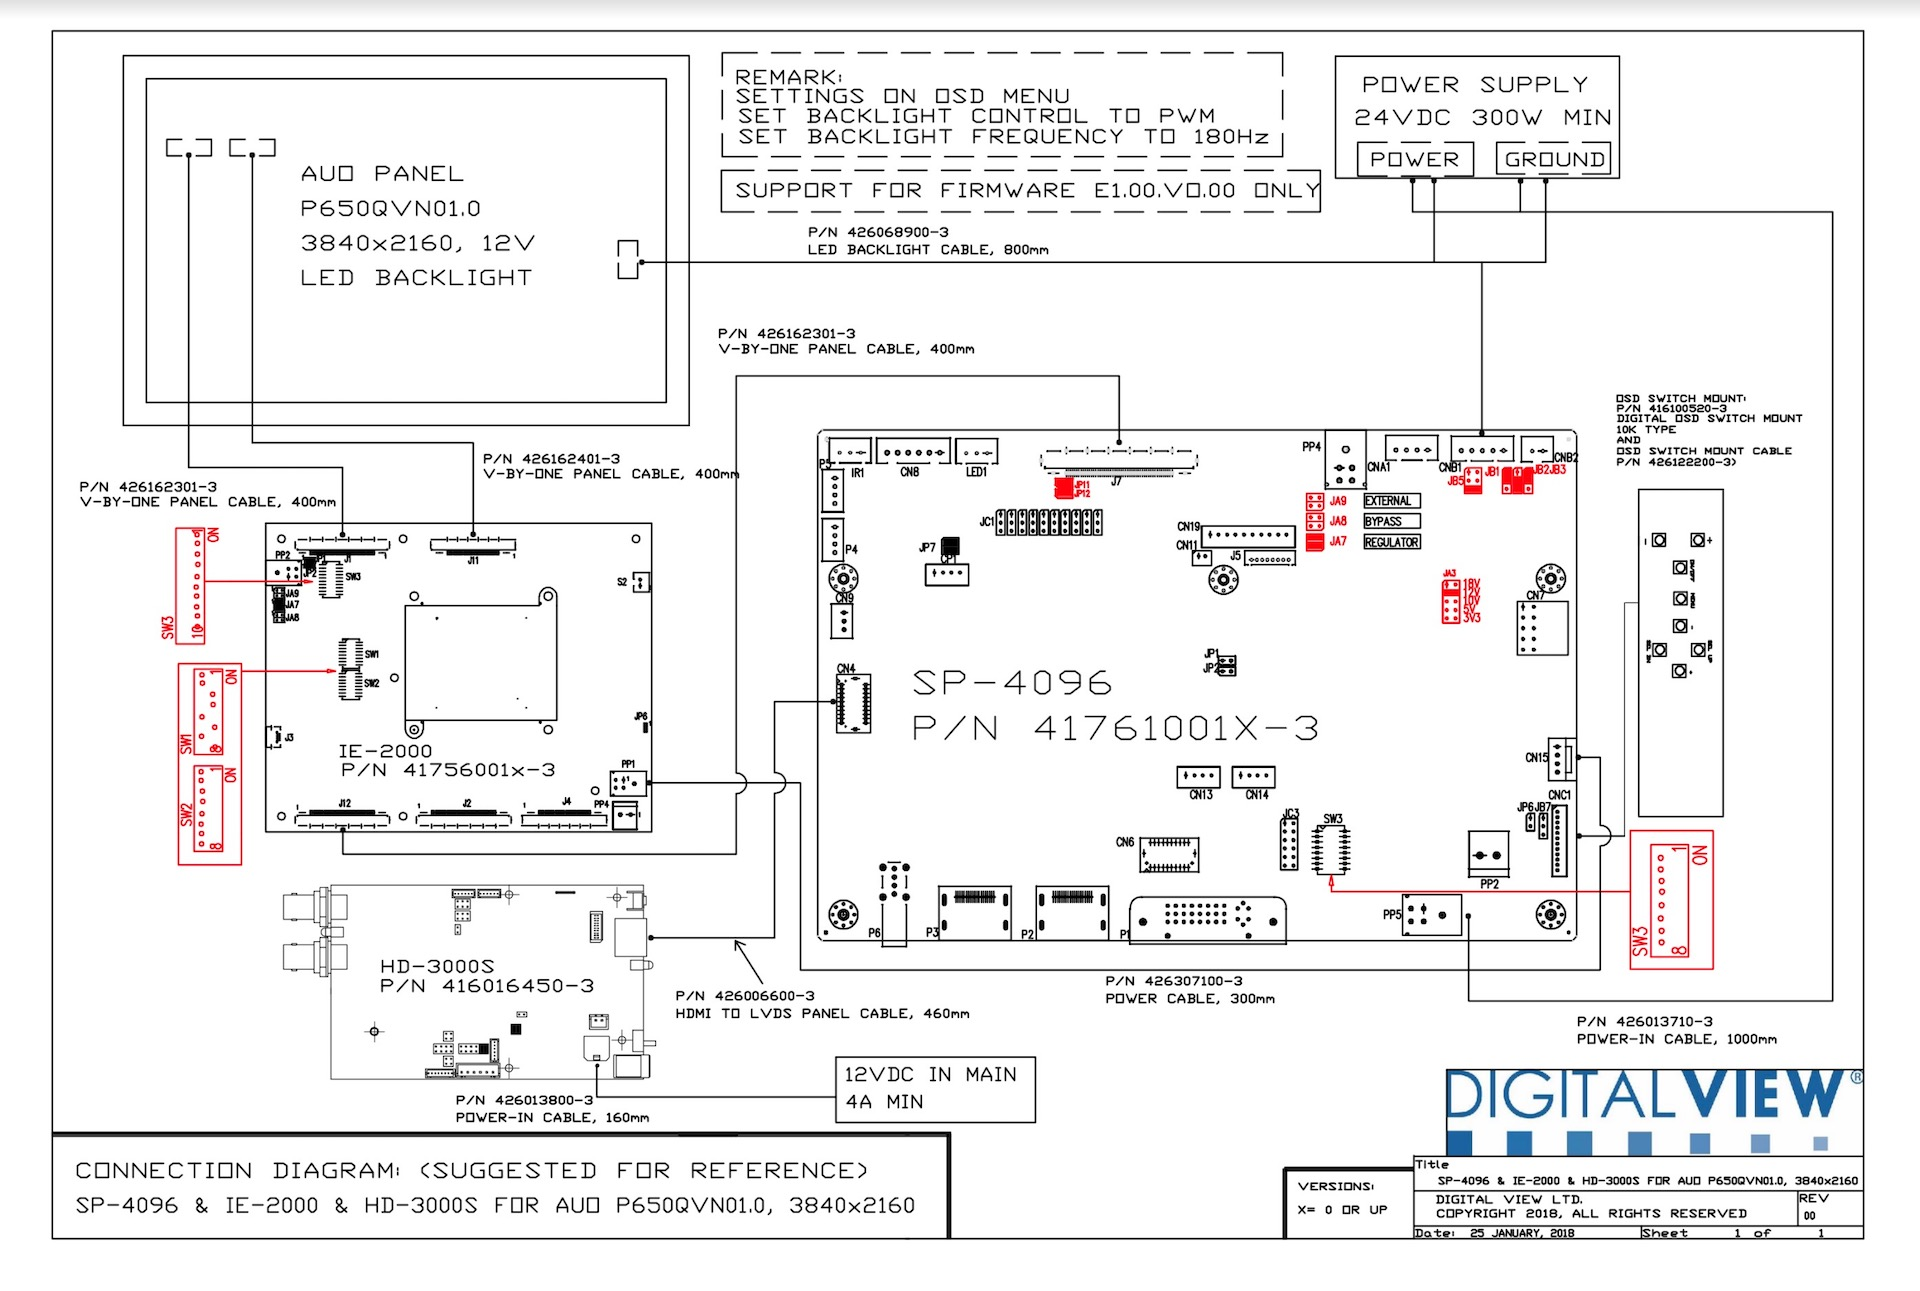 Wiring Diagram For Xtraview : Dstv xtraview installation diagram choice image how to